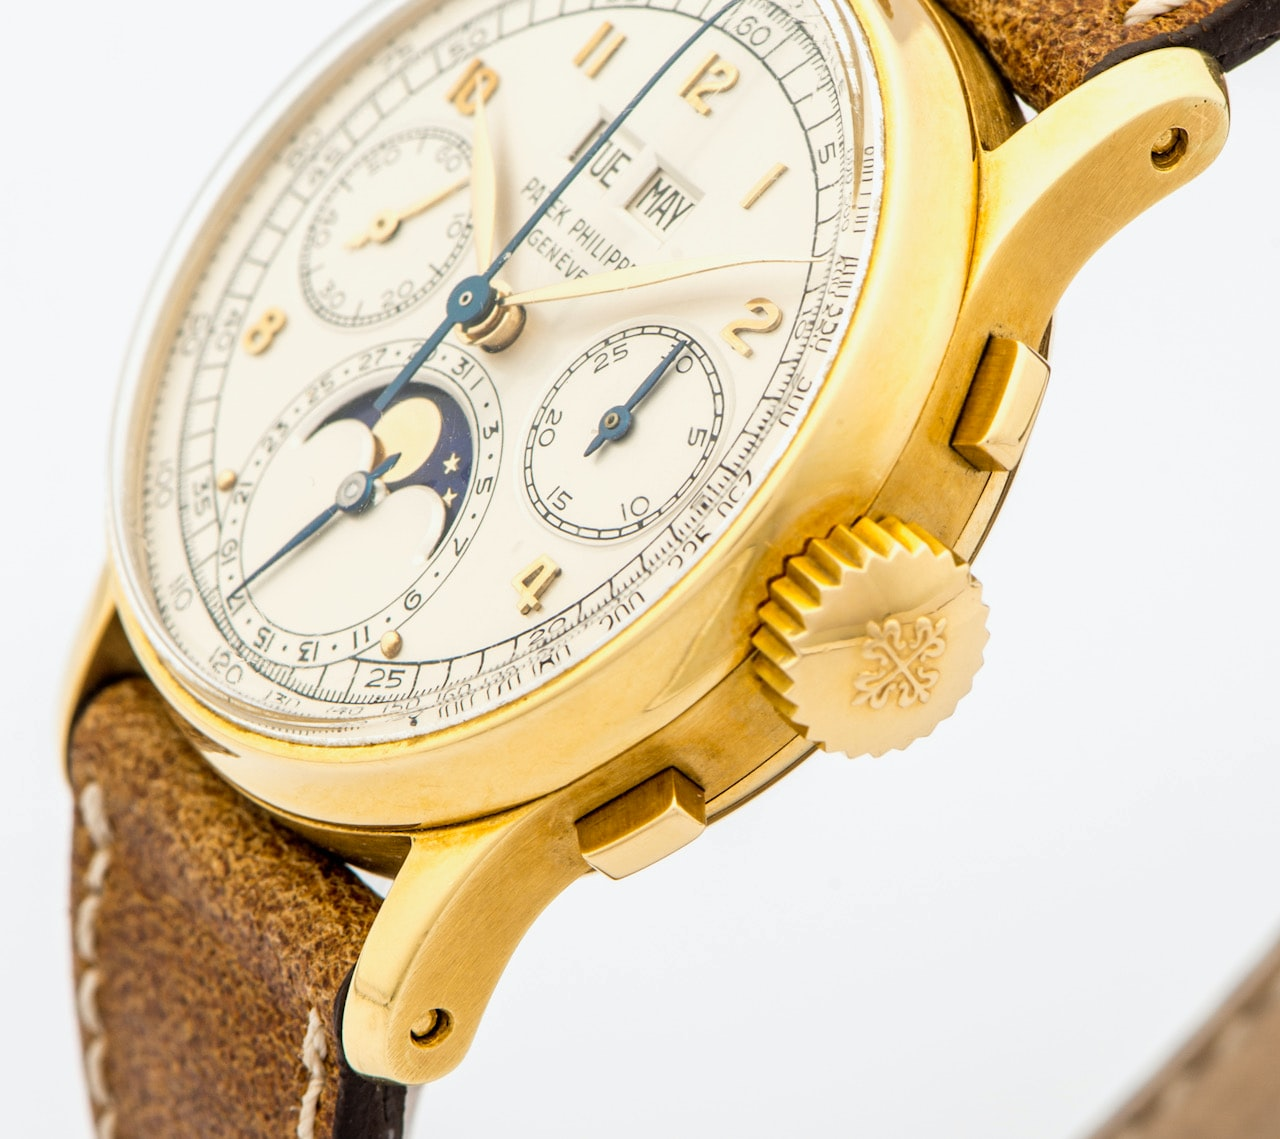 Watch Collector PSA: A Very Rare Patek Philippe 1518 In Yellow Gold Has Been Stolen (Please Share) IMG 4771